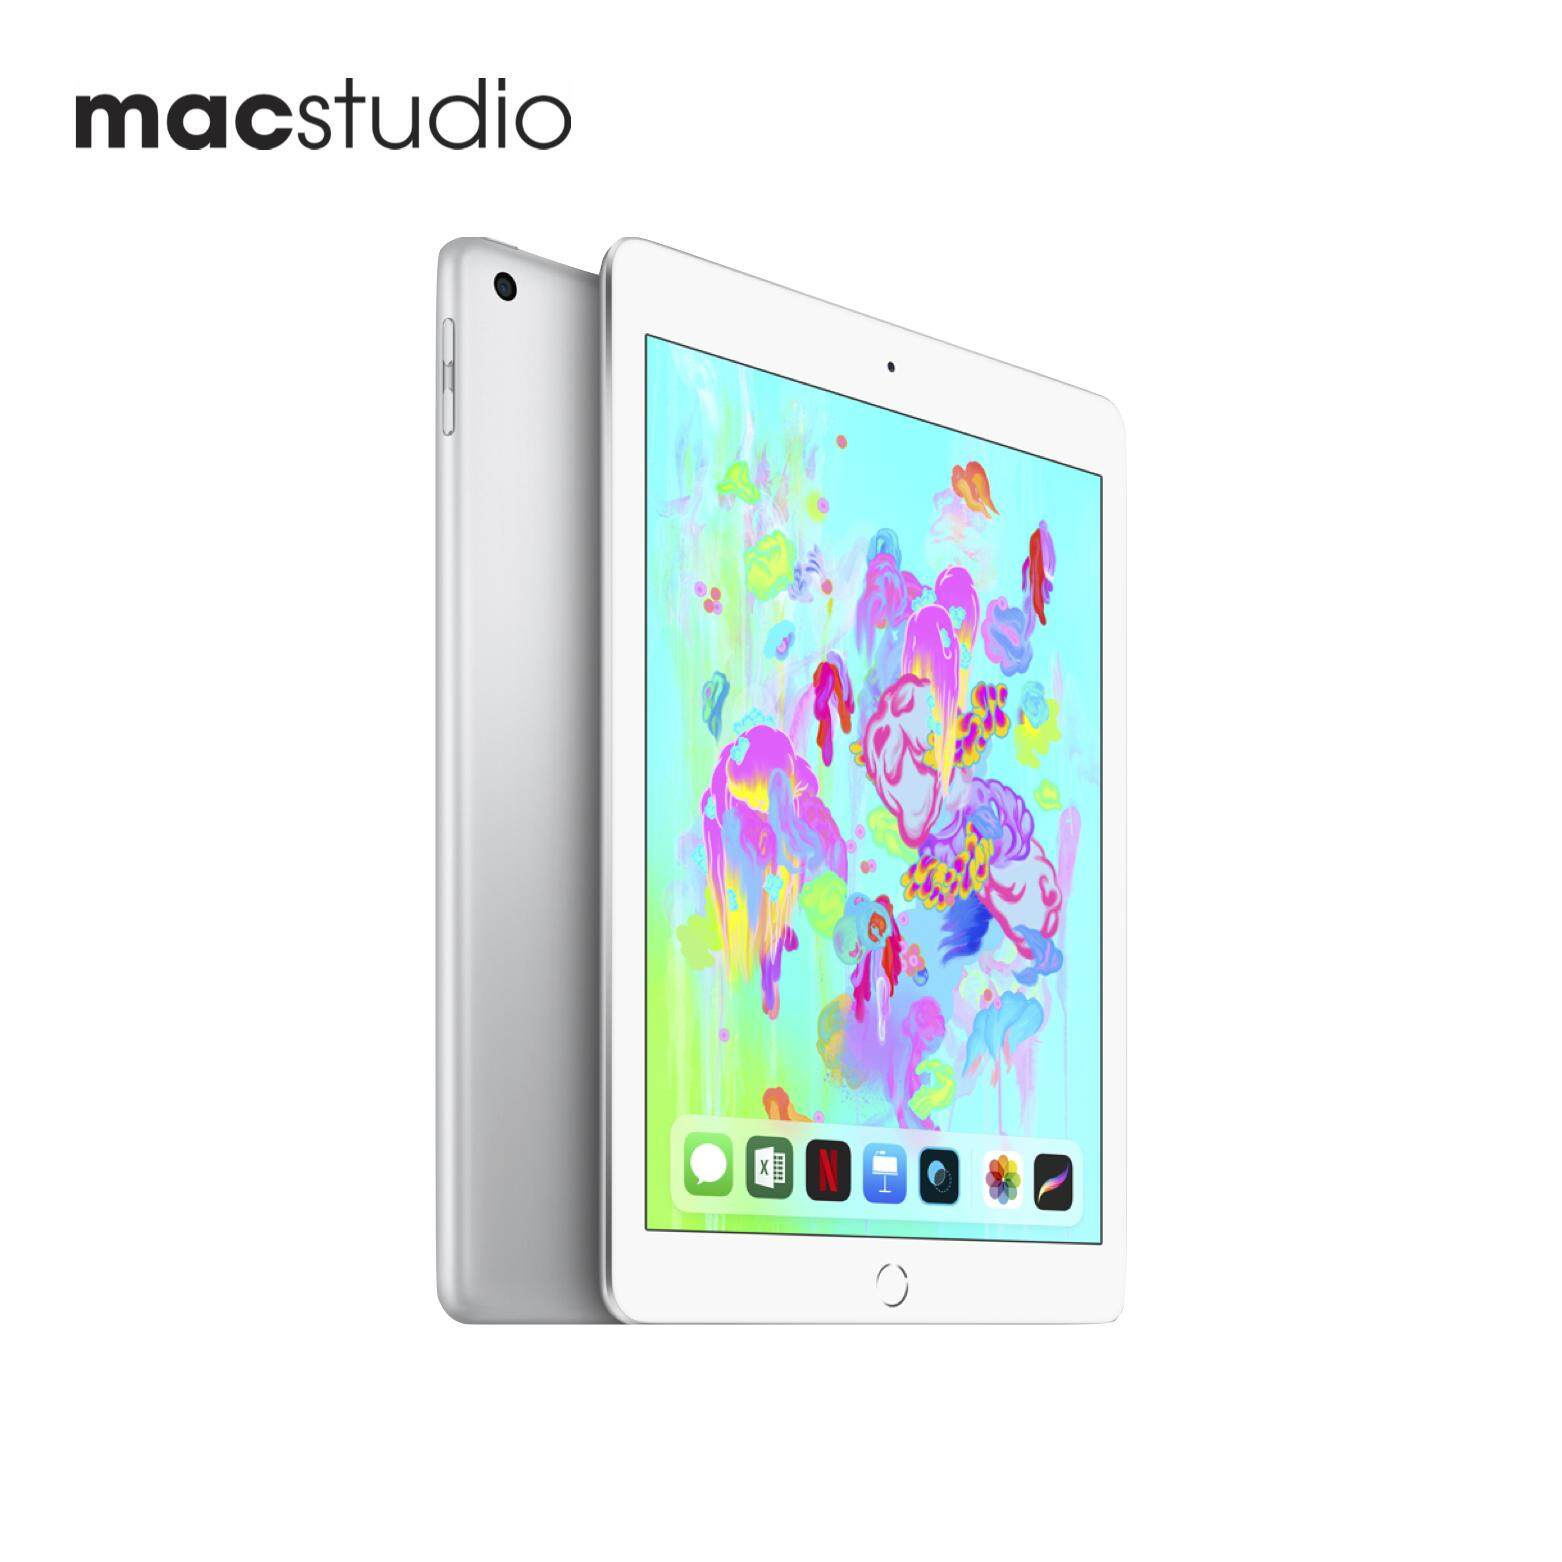 Apple Mobiles Tablets Price In Malaysia Best Ipad Pro 105 512gb New Tablet Silver Wifi Only 6th Generation 97 Inch 128gb Cellular